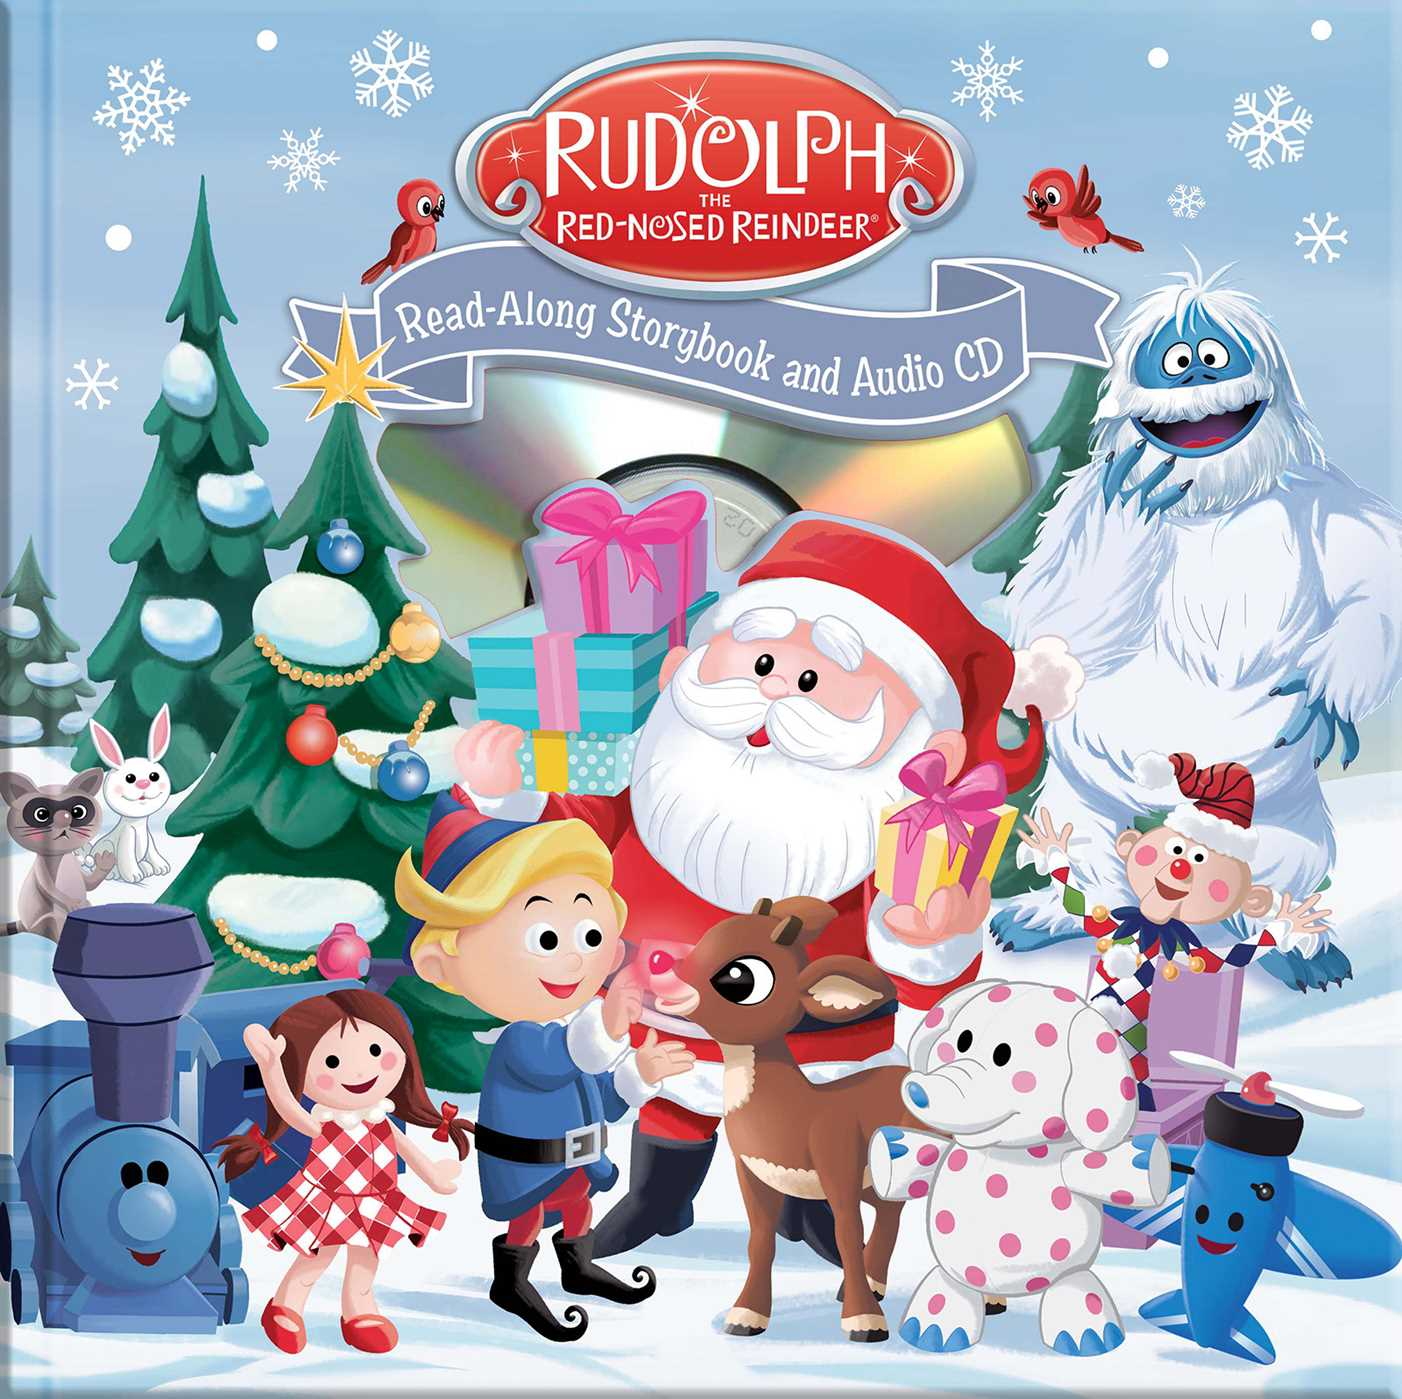 Rudolph The Red Nosed Reindeer Read Along Book And Cd Book Summary Video Official Publisher Page Simon Schuster Canada,Baby Drawer Organizer Ikea